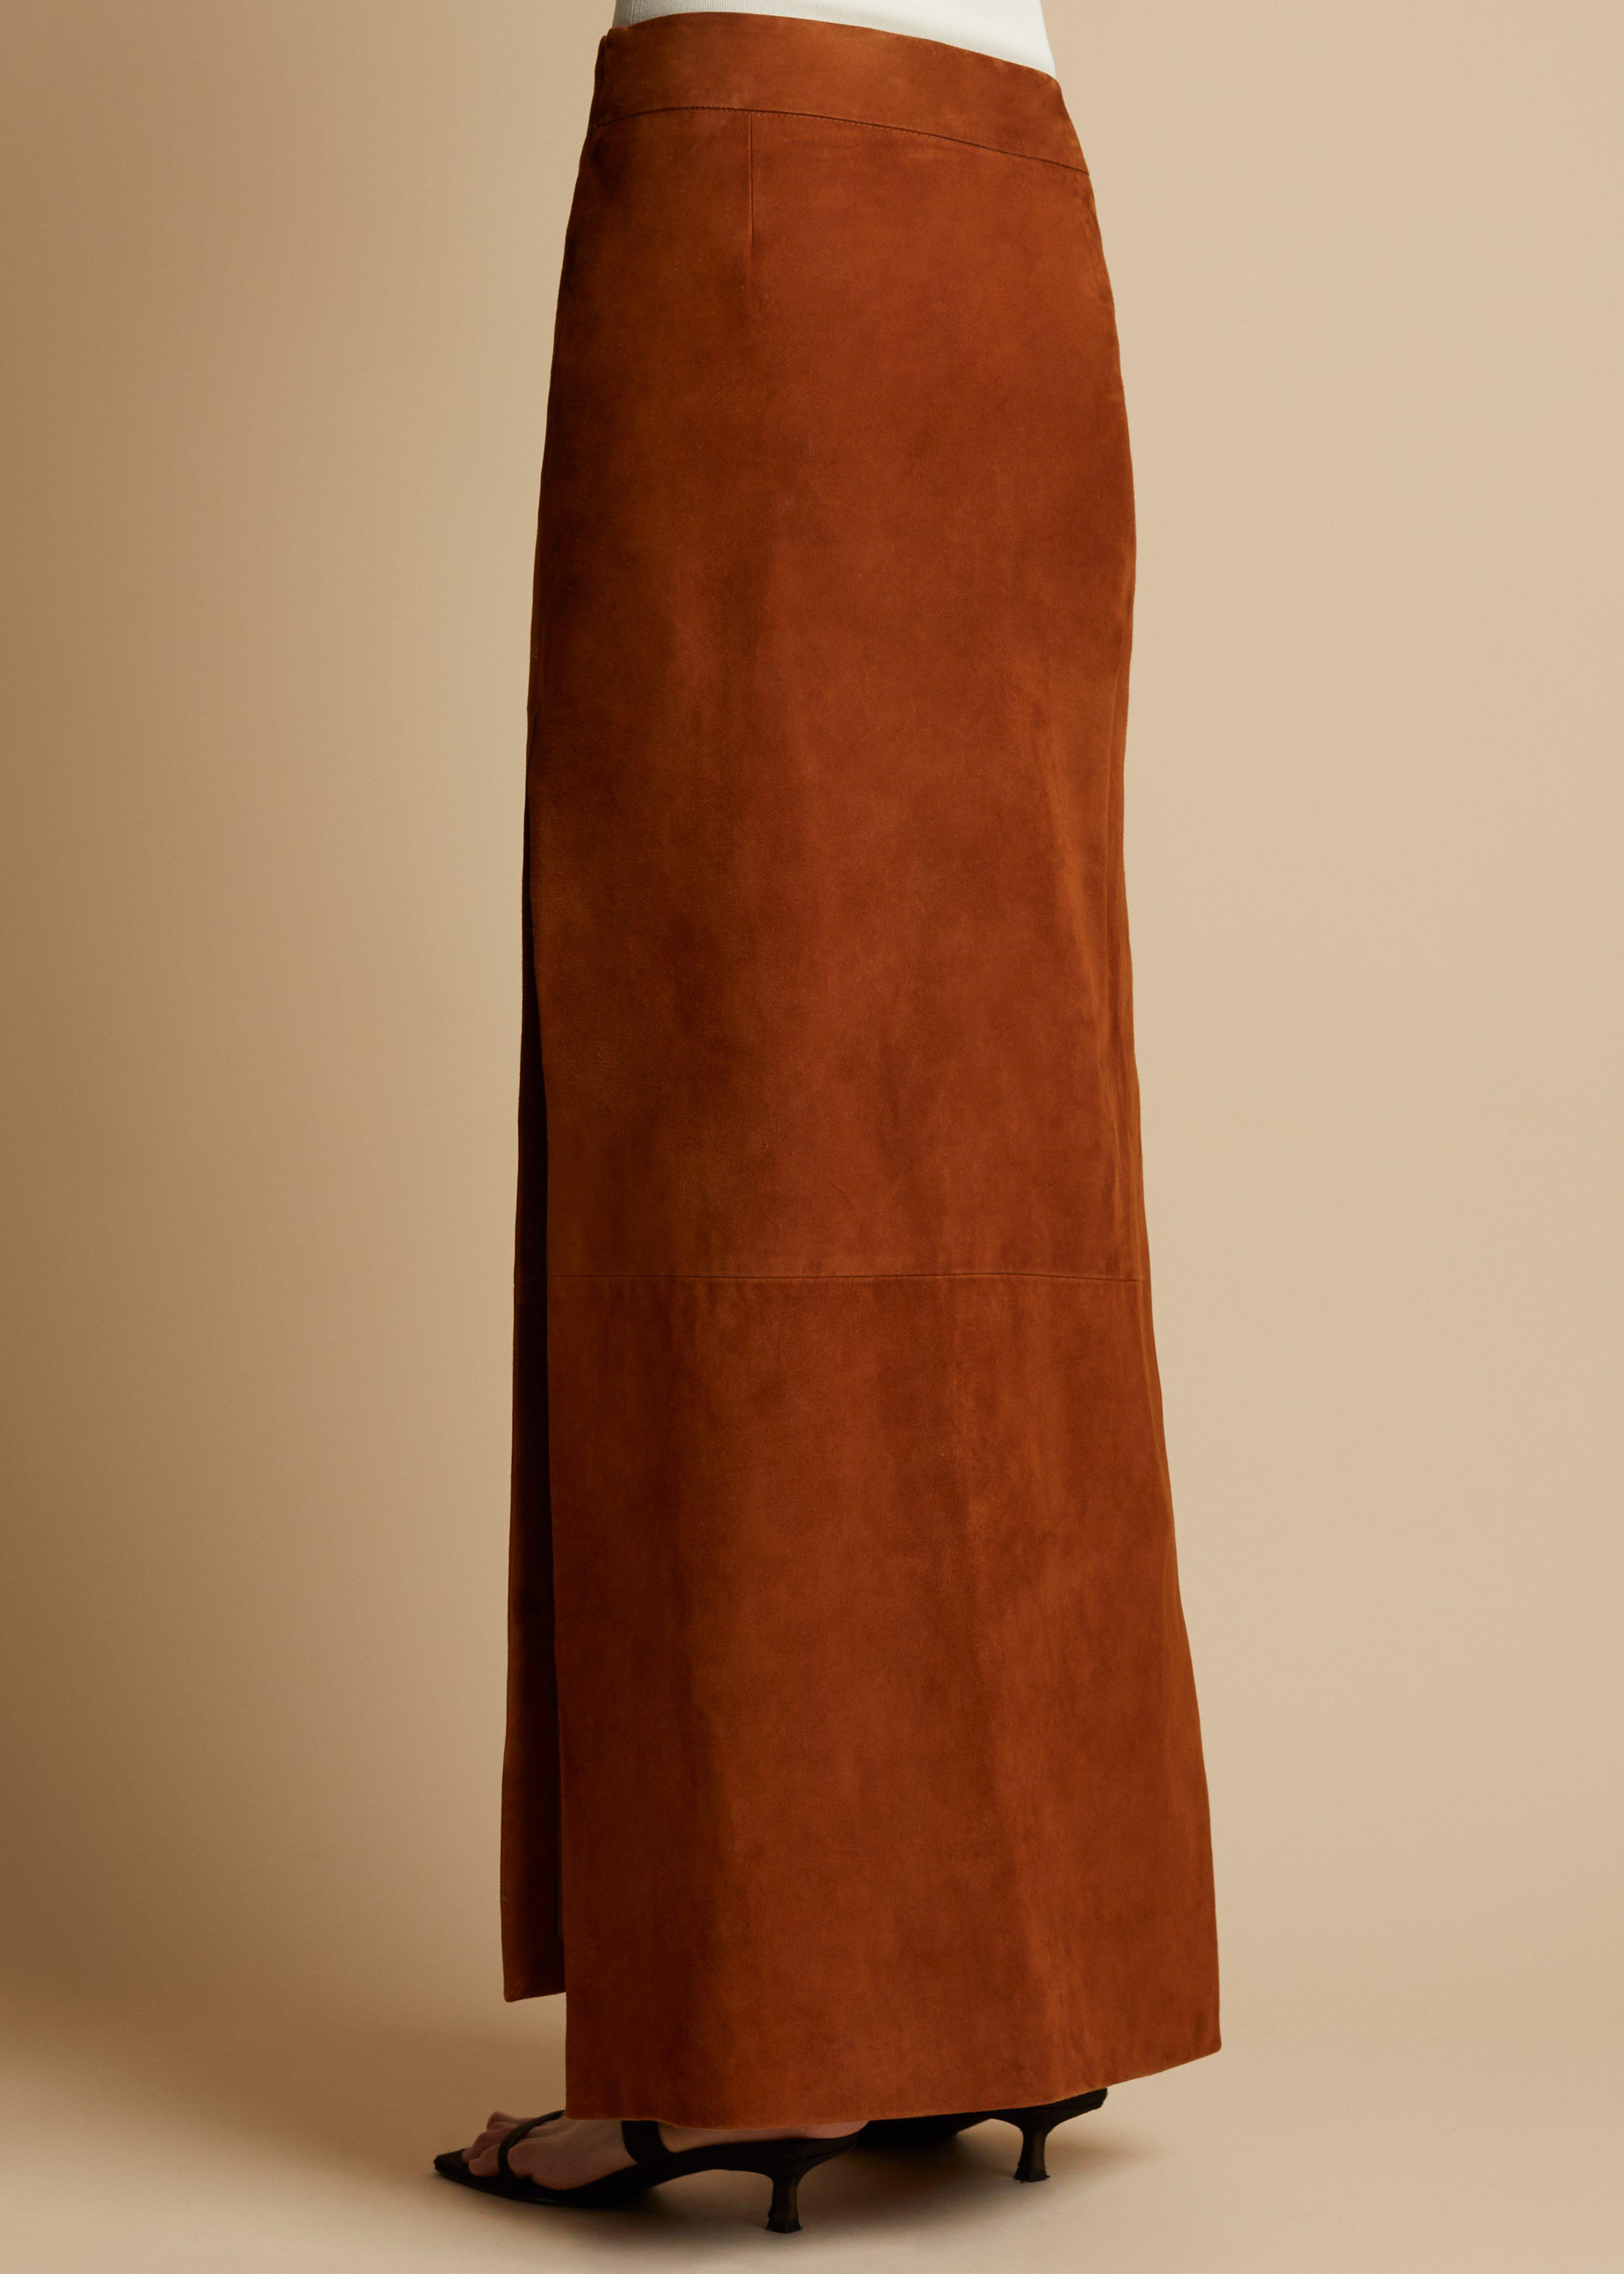 The Myla Skirt in Chestnut Suede 3